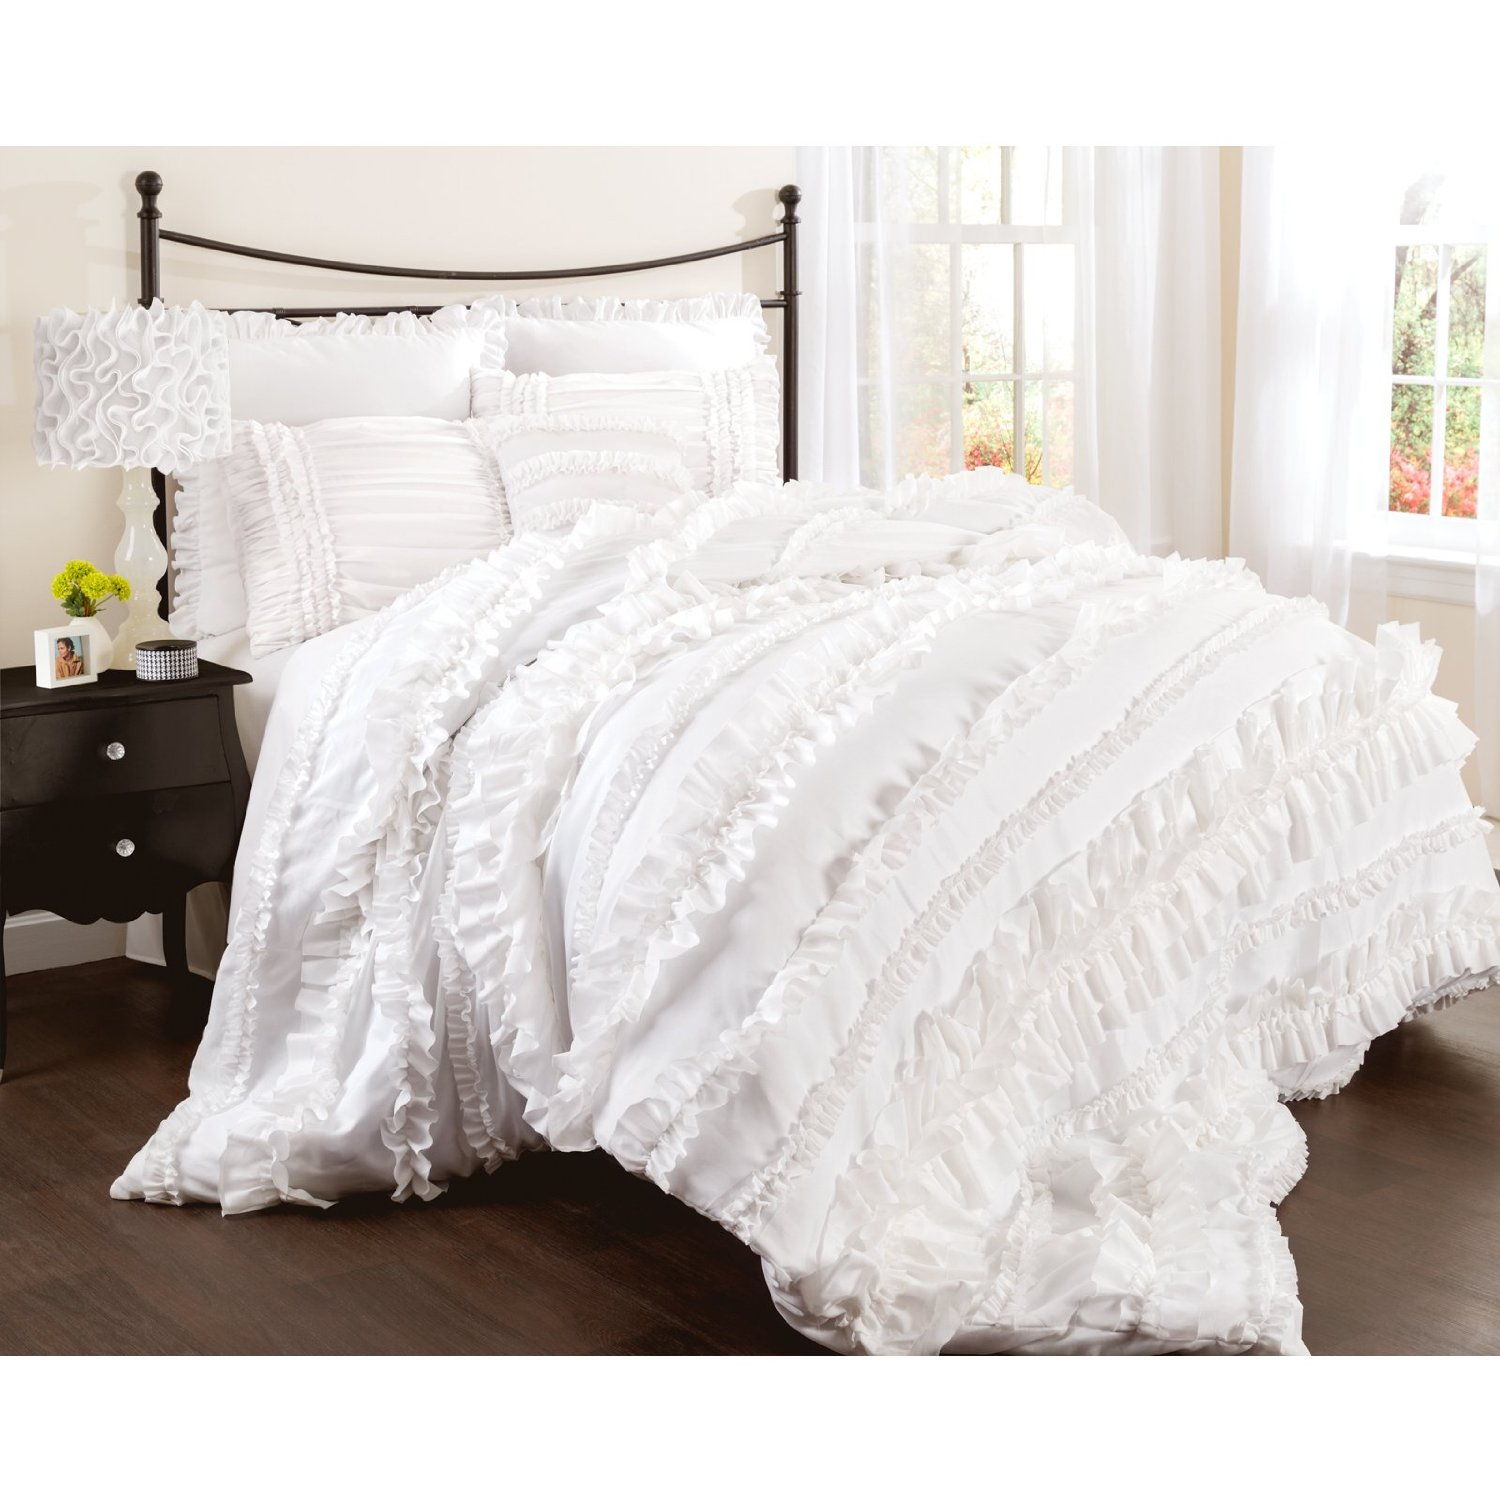 Chenille Bedspreads Queen Size | Bedspreads at Macy's | Queen Bedspreads